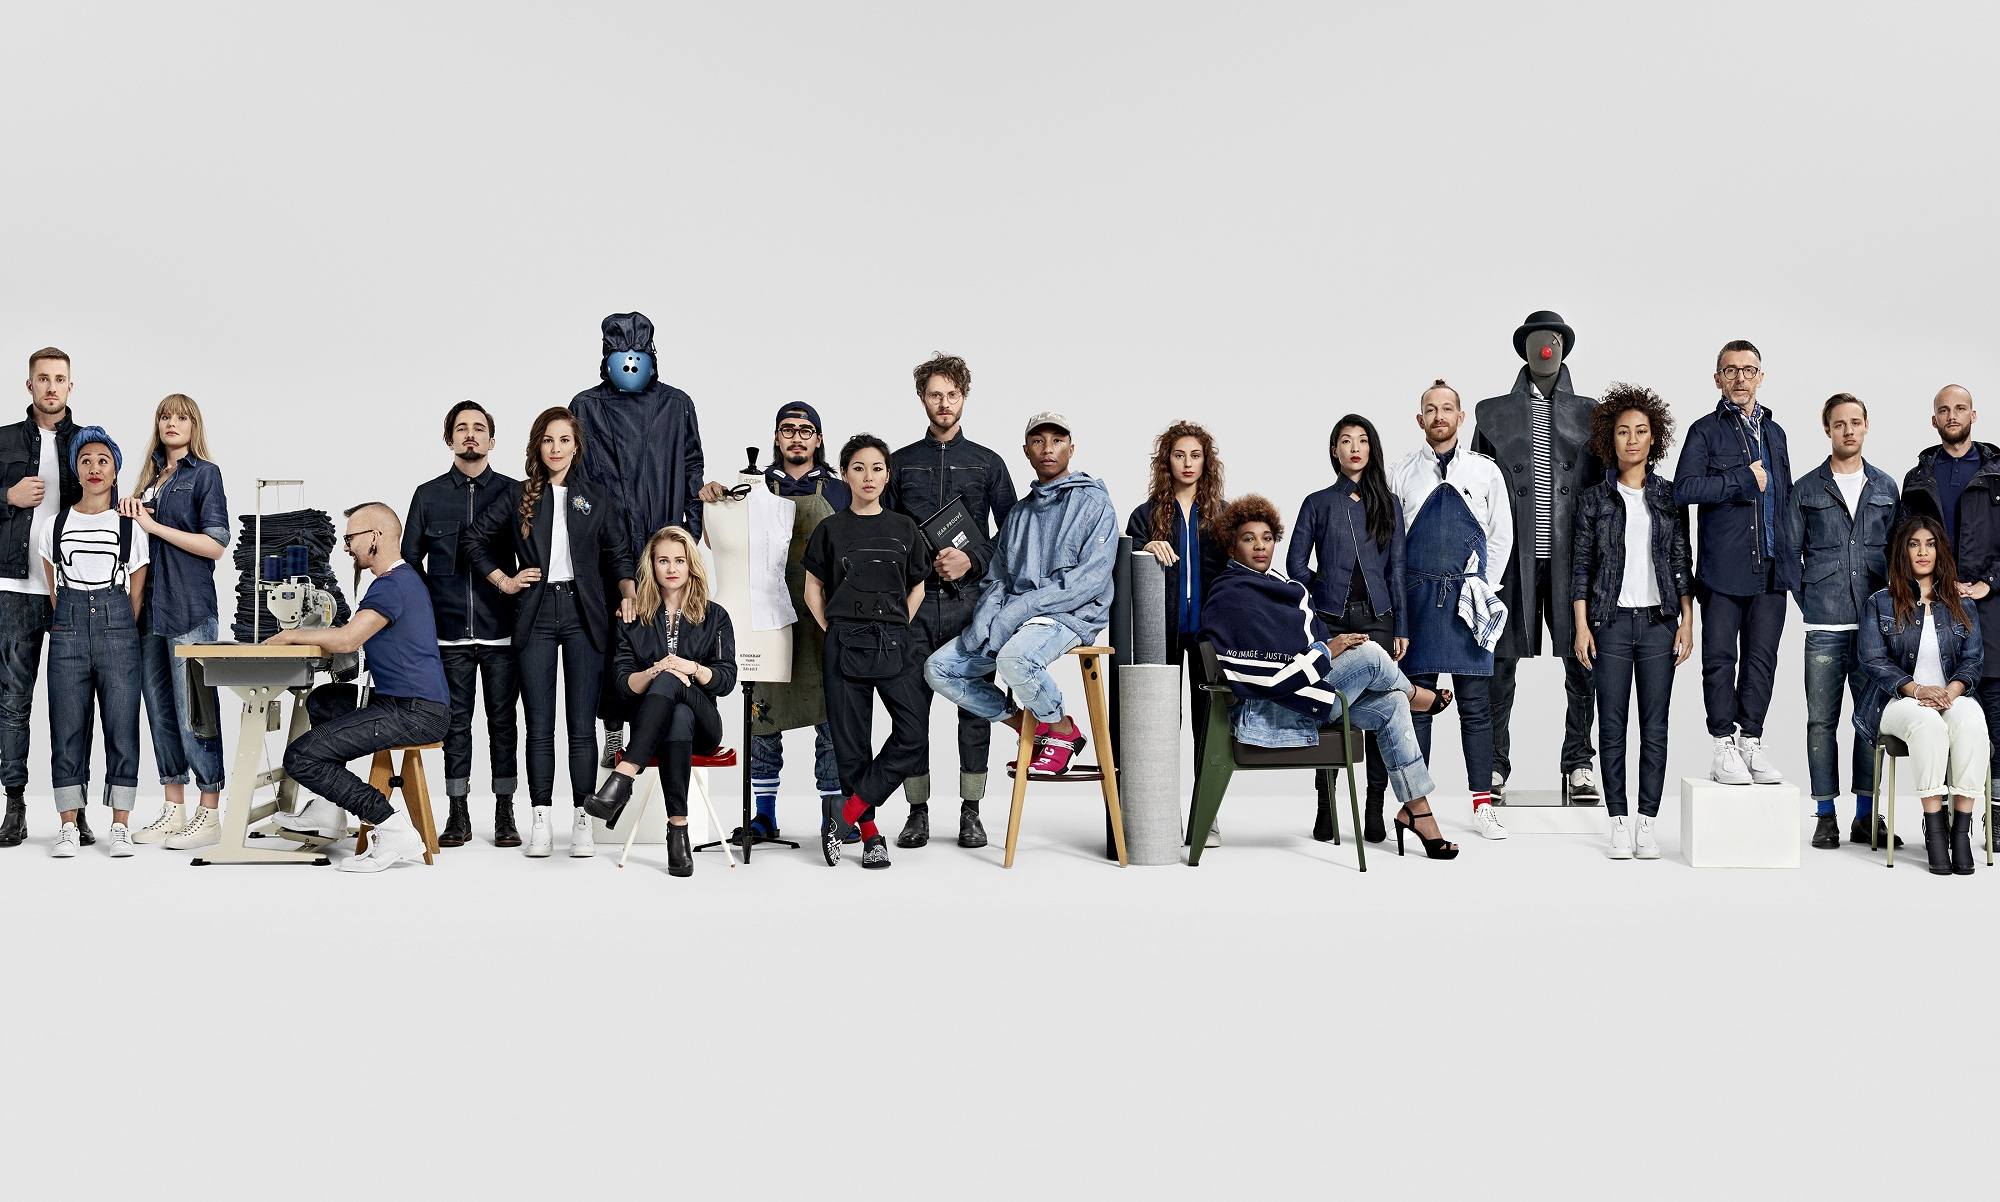 g star raw employees star alongside pharrell williams in. Black Bedroom Furniture Sets. Home Design Ideas